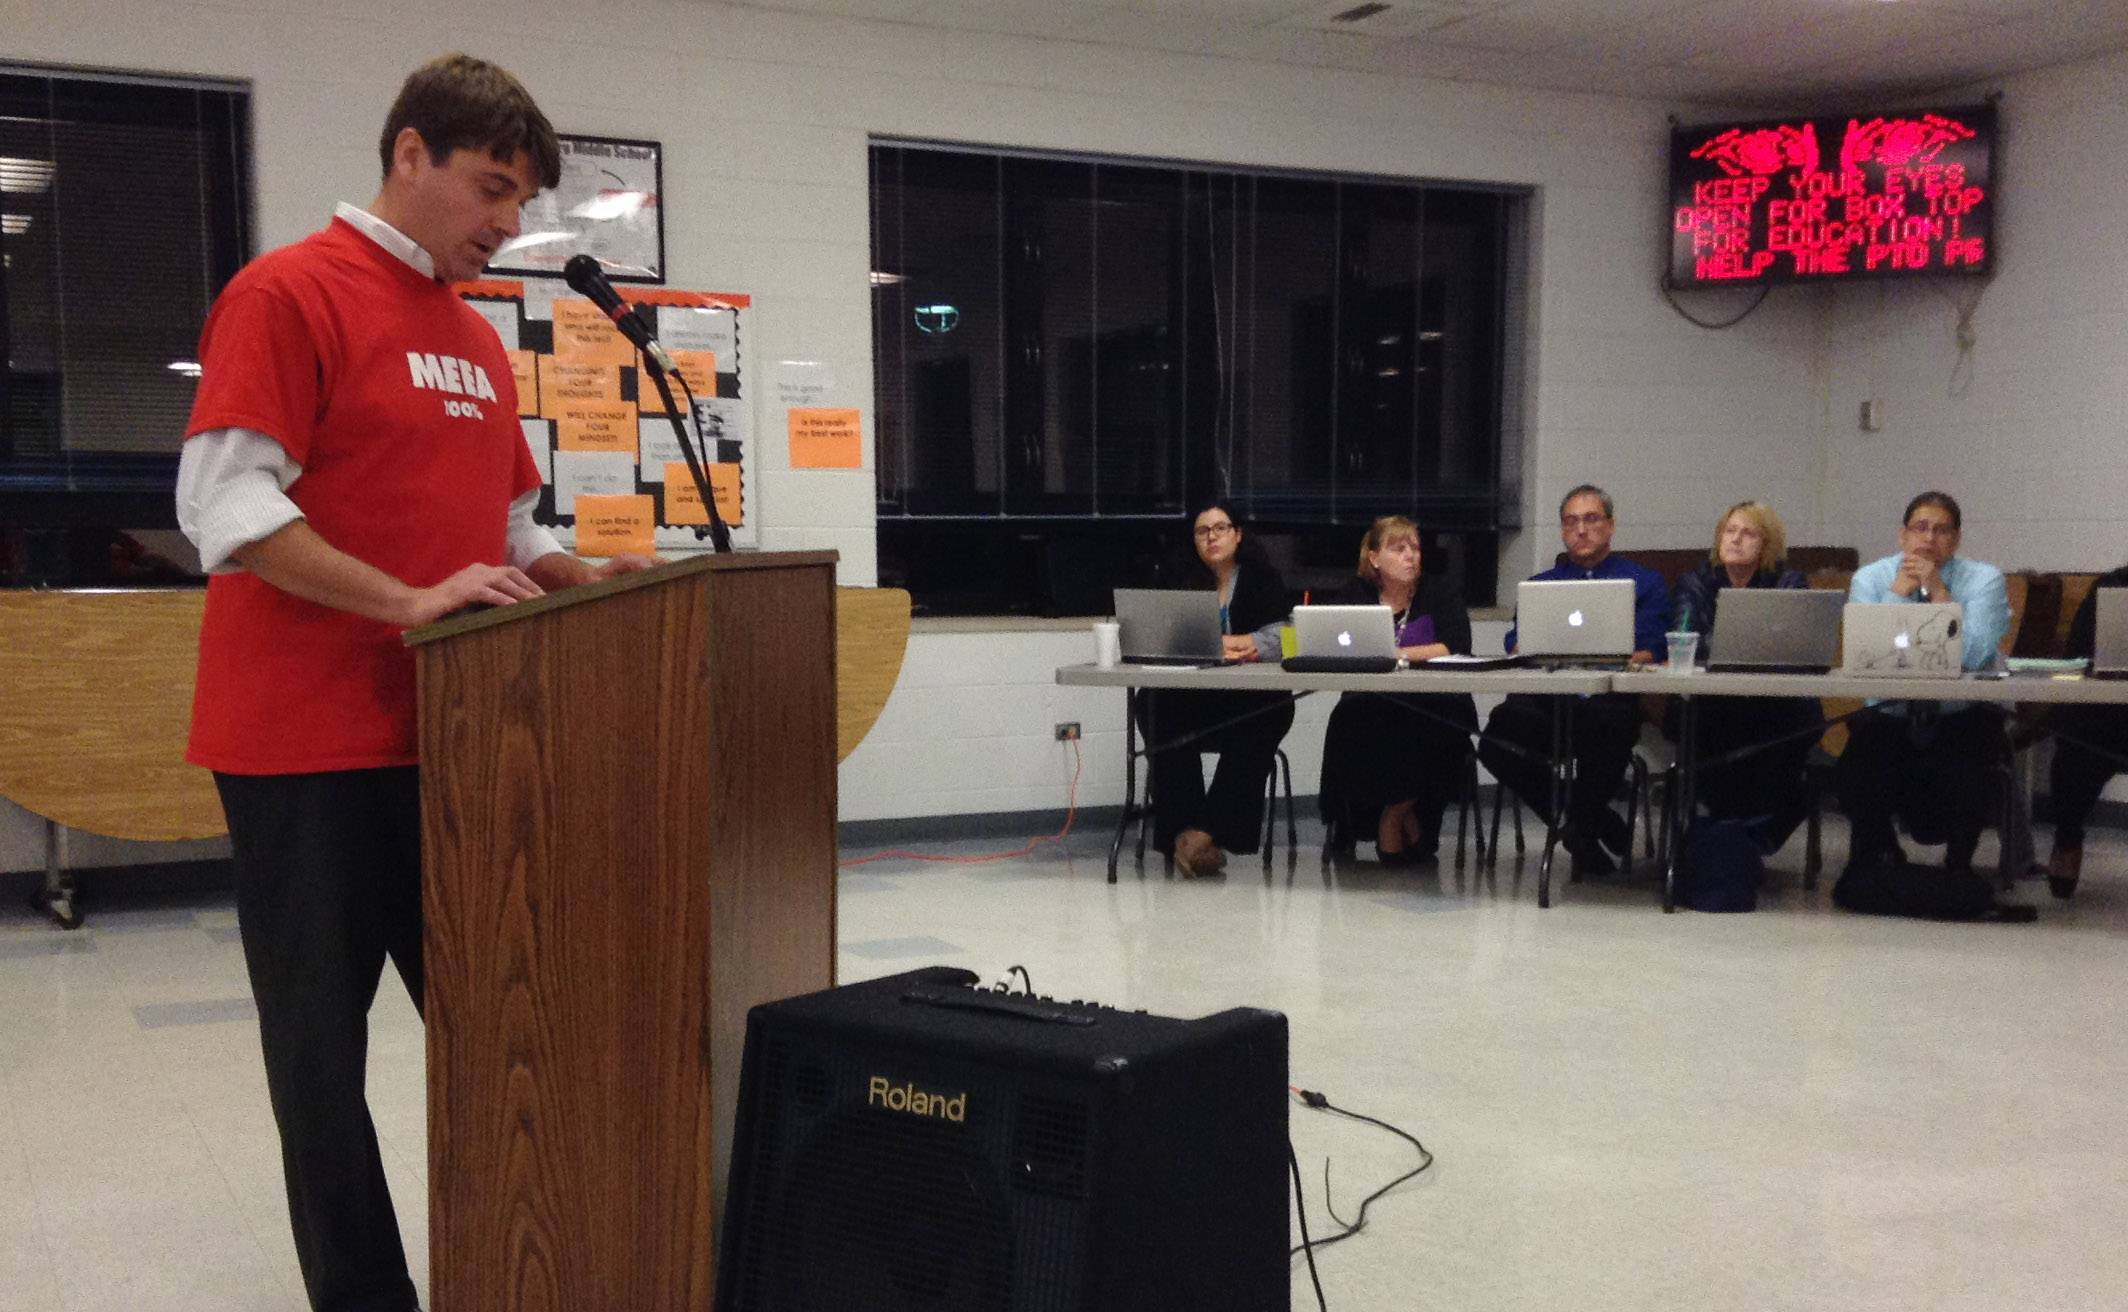 Nick Ciko, co-president of the Mundelein Elementary Education Association, addresses the Mundelein Elementary District 75 school board Monday night. Teachers have been working without a contract since June 30.